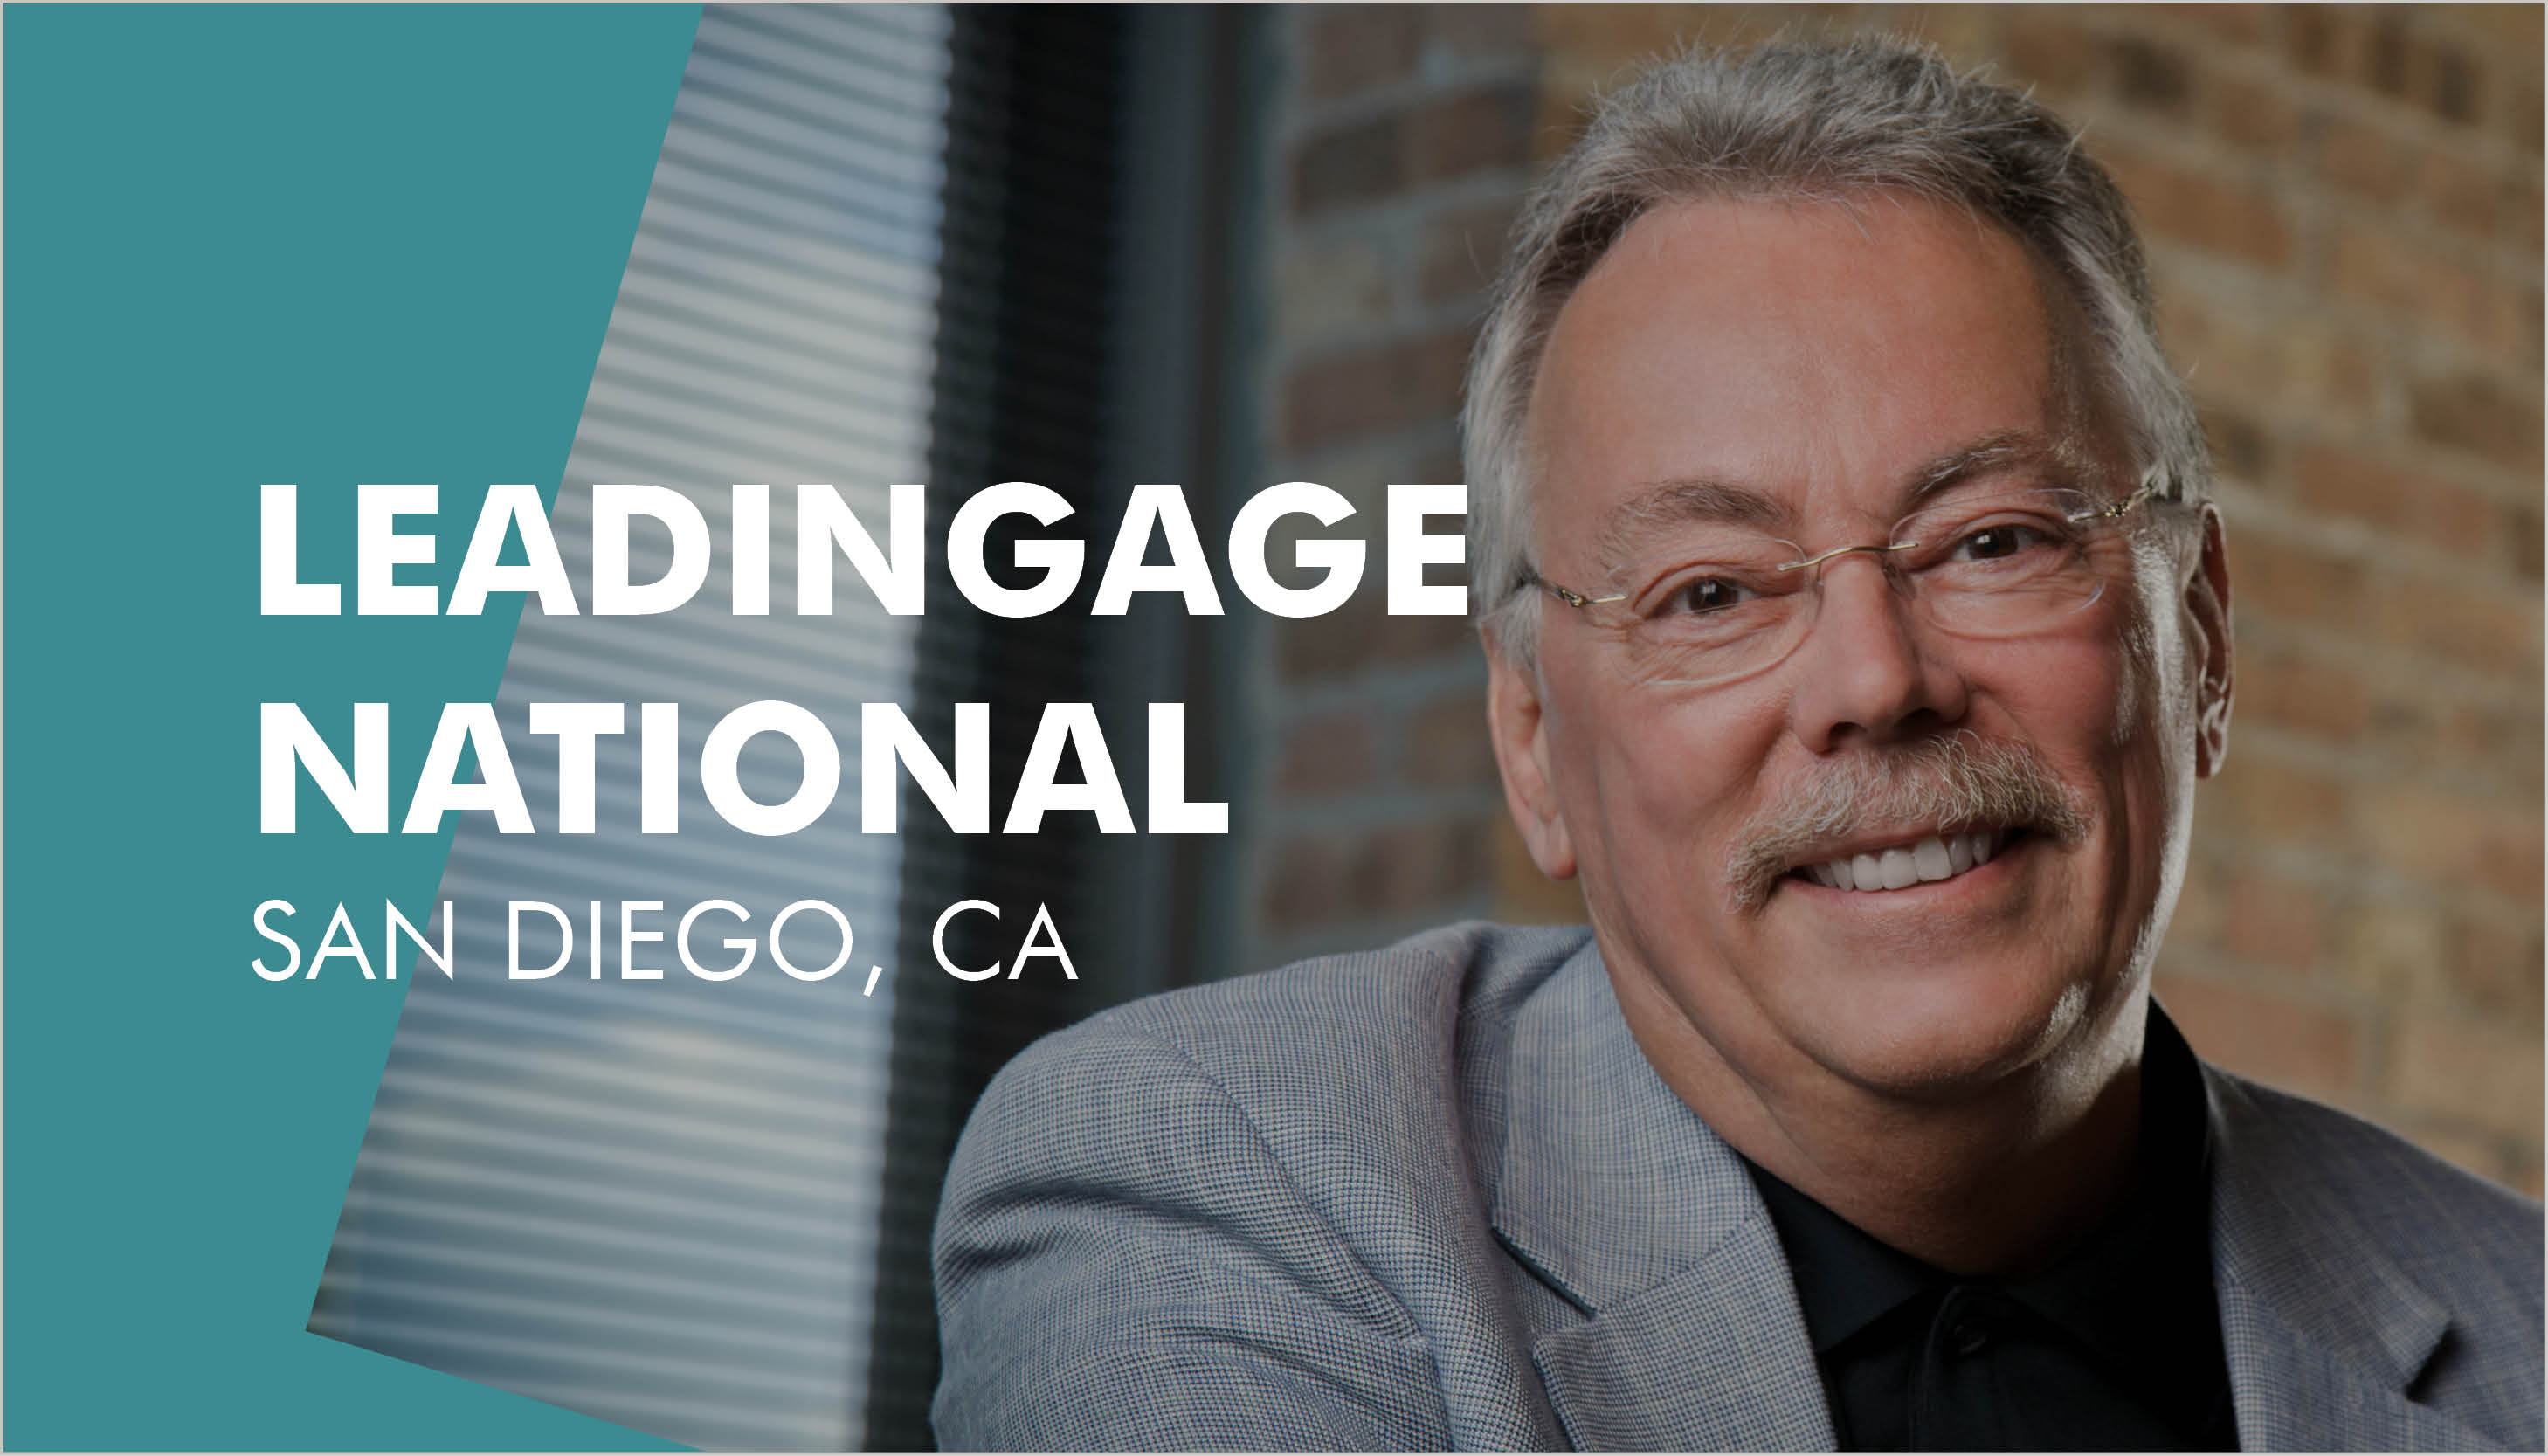 LeadingAge Annual Meeting + Expo 2019 Image